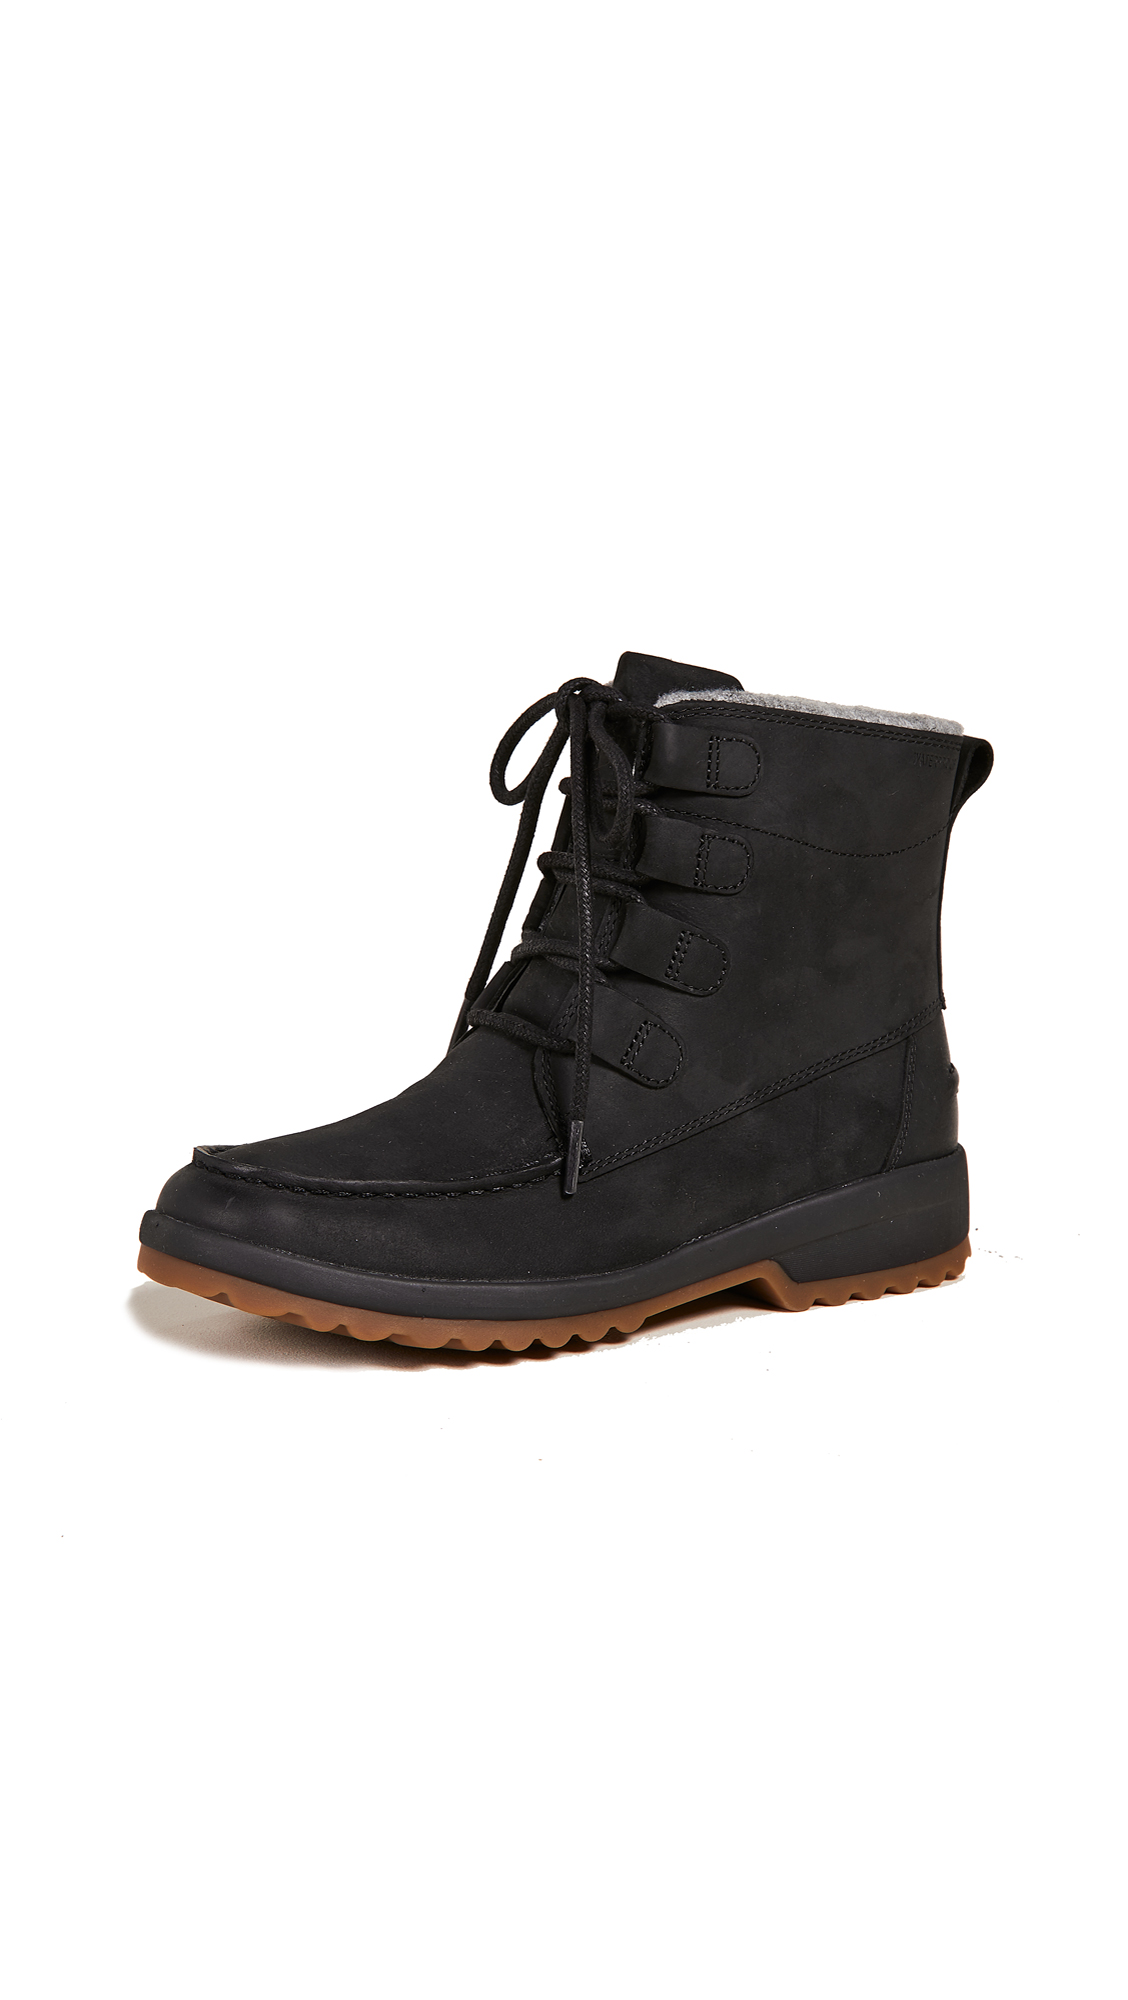 Sperry Maritime Cruz Boots - Black